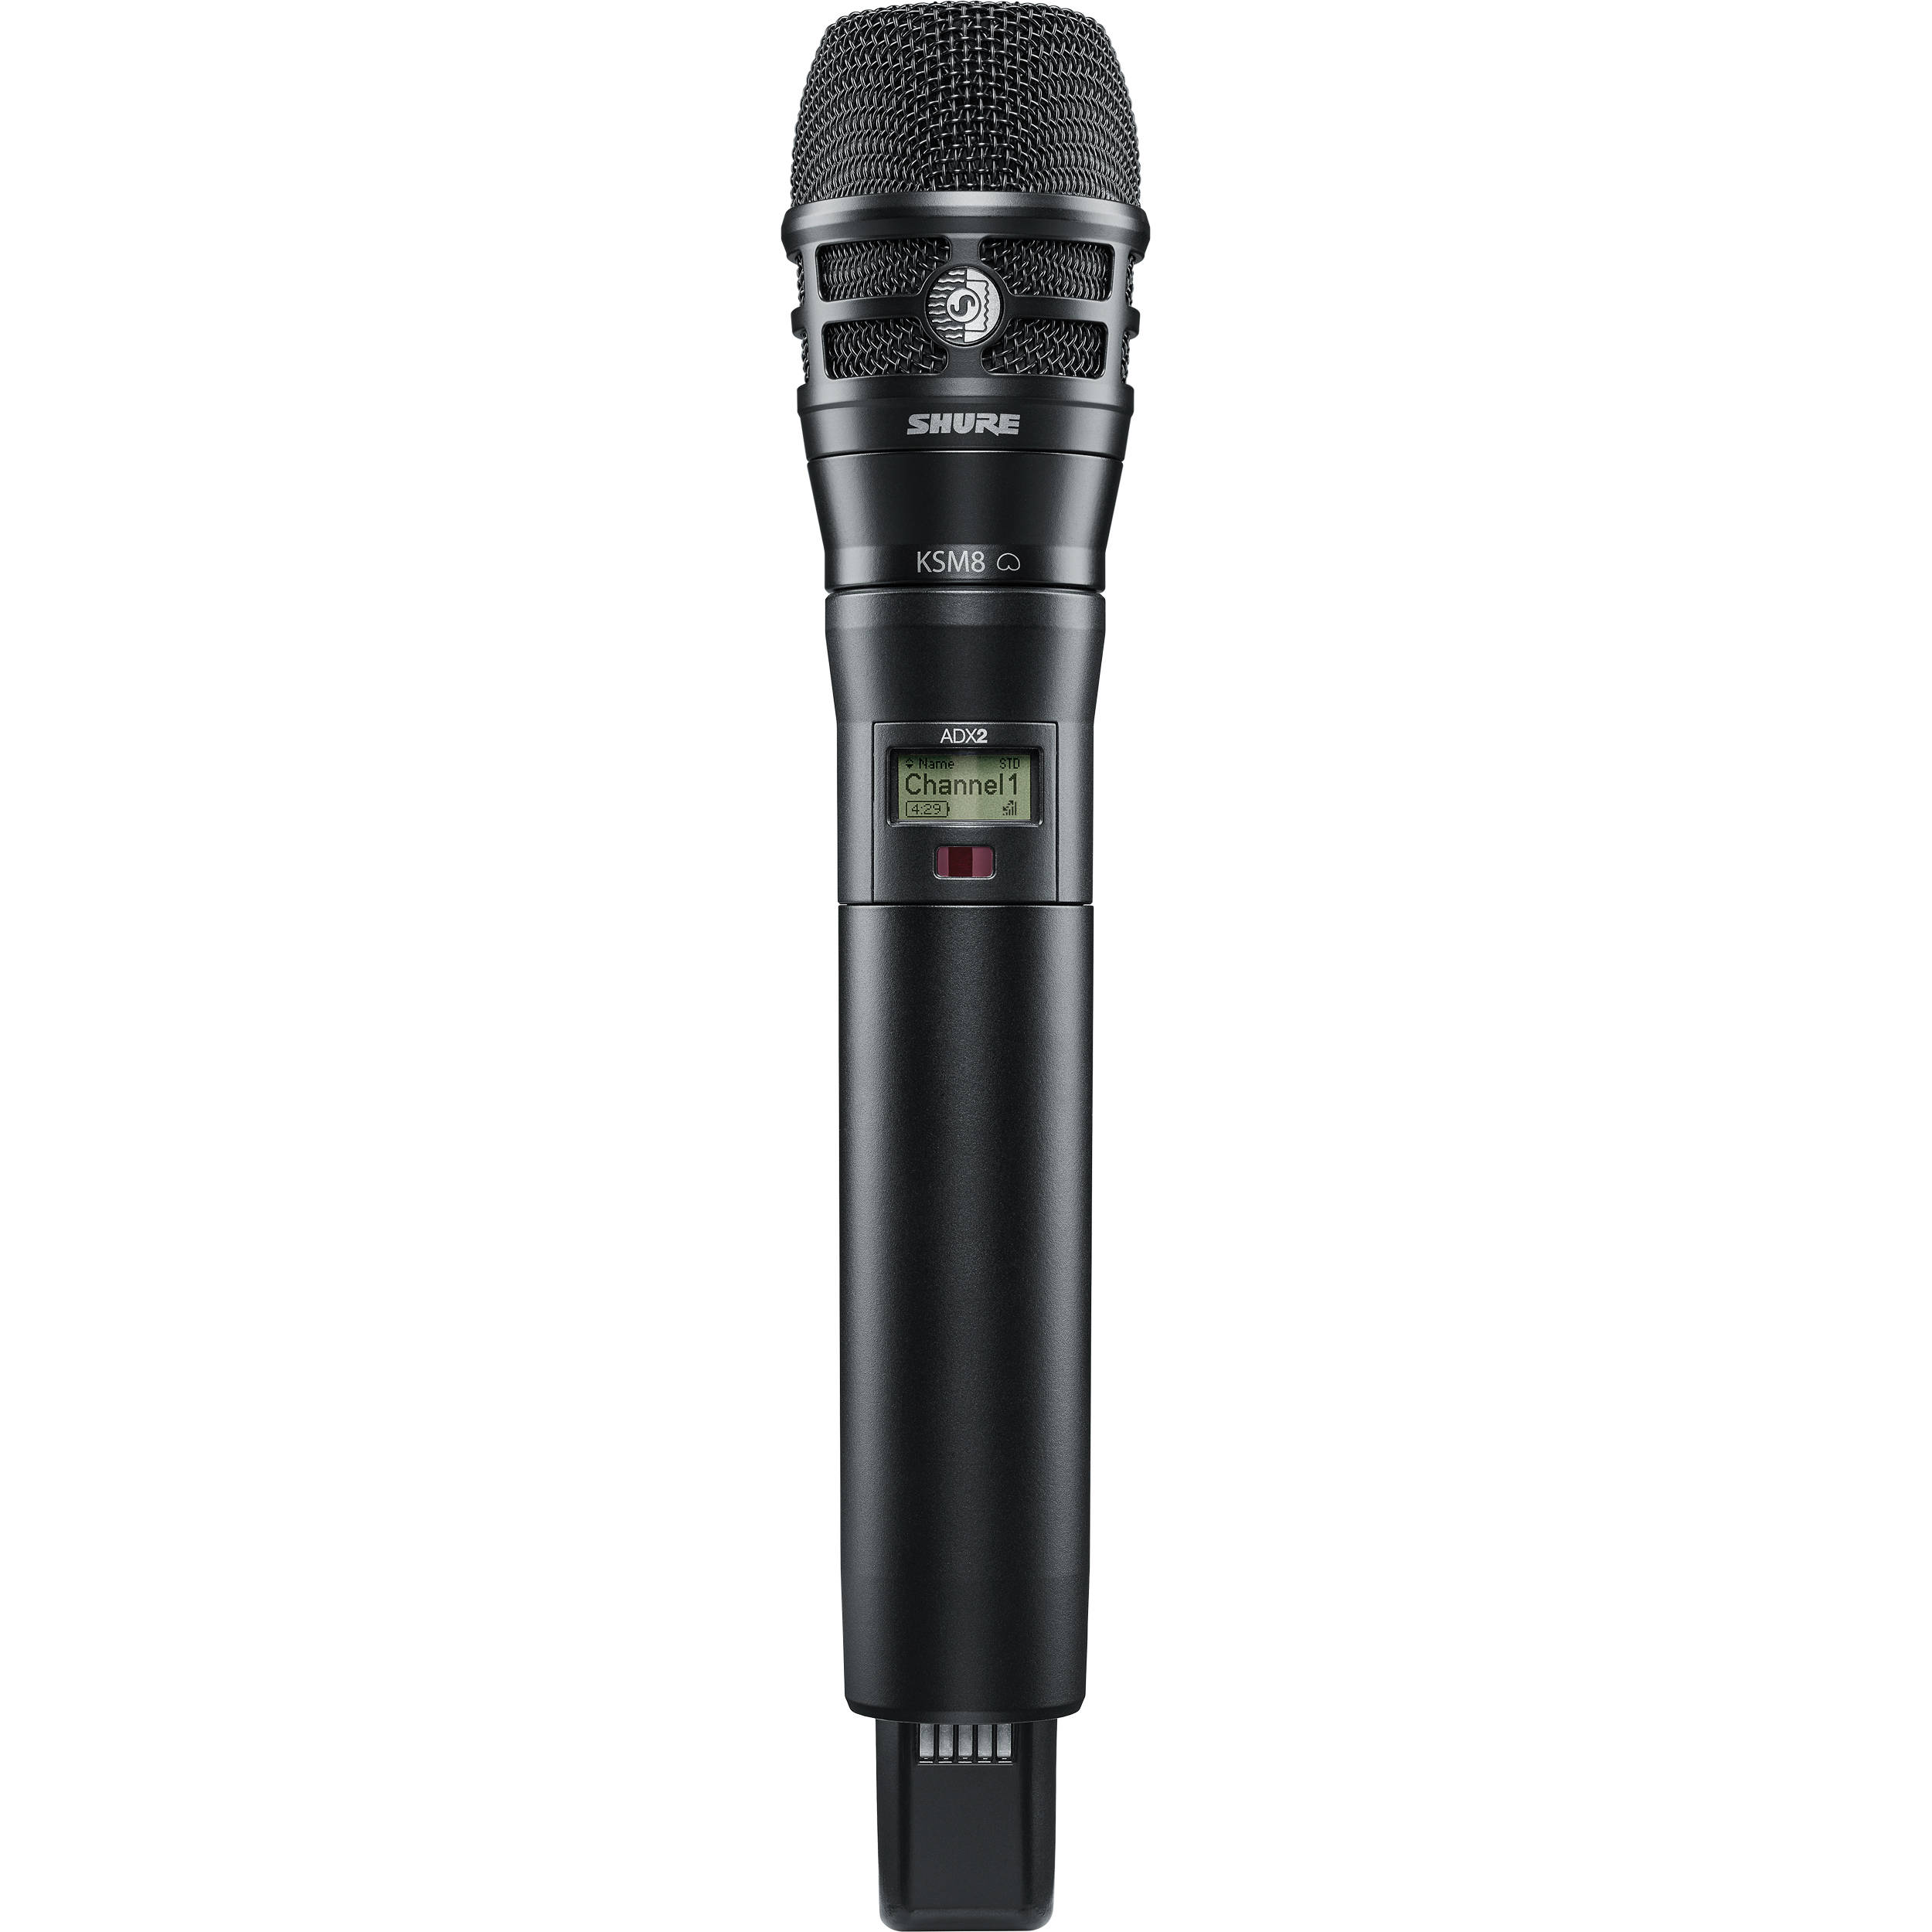 shure adx2 k8b handheld wireless microphone adx2 k8b g57 b h. Black Bedroom Furniture Sets. Home Design Ideas